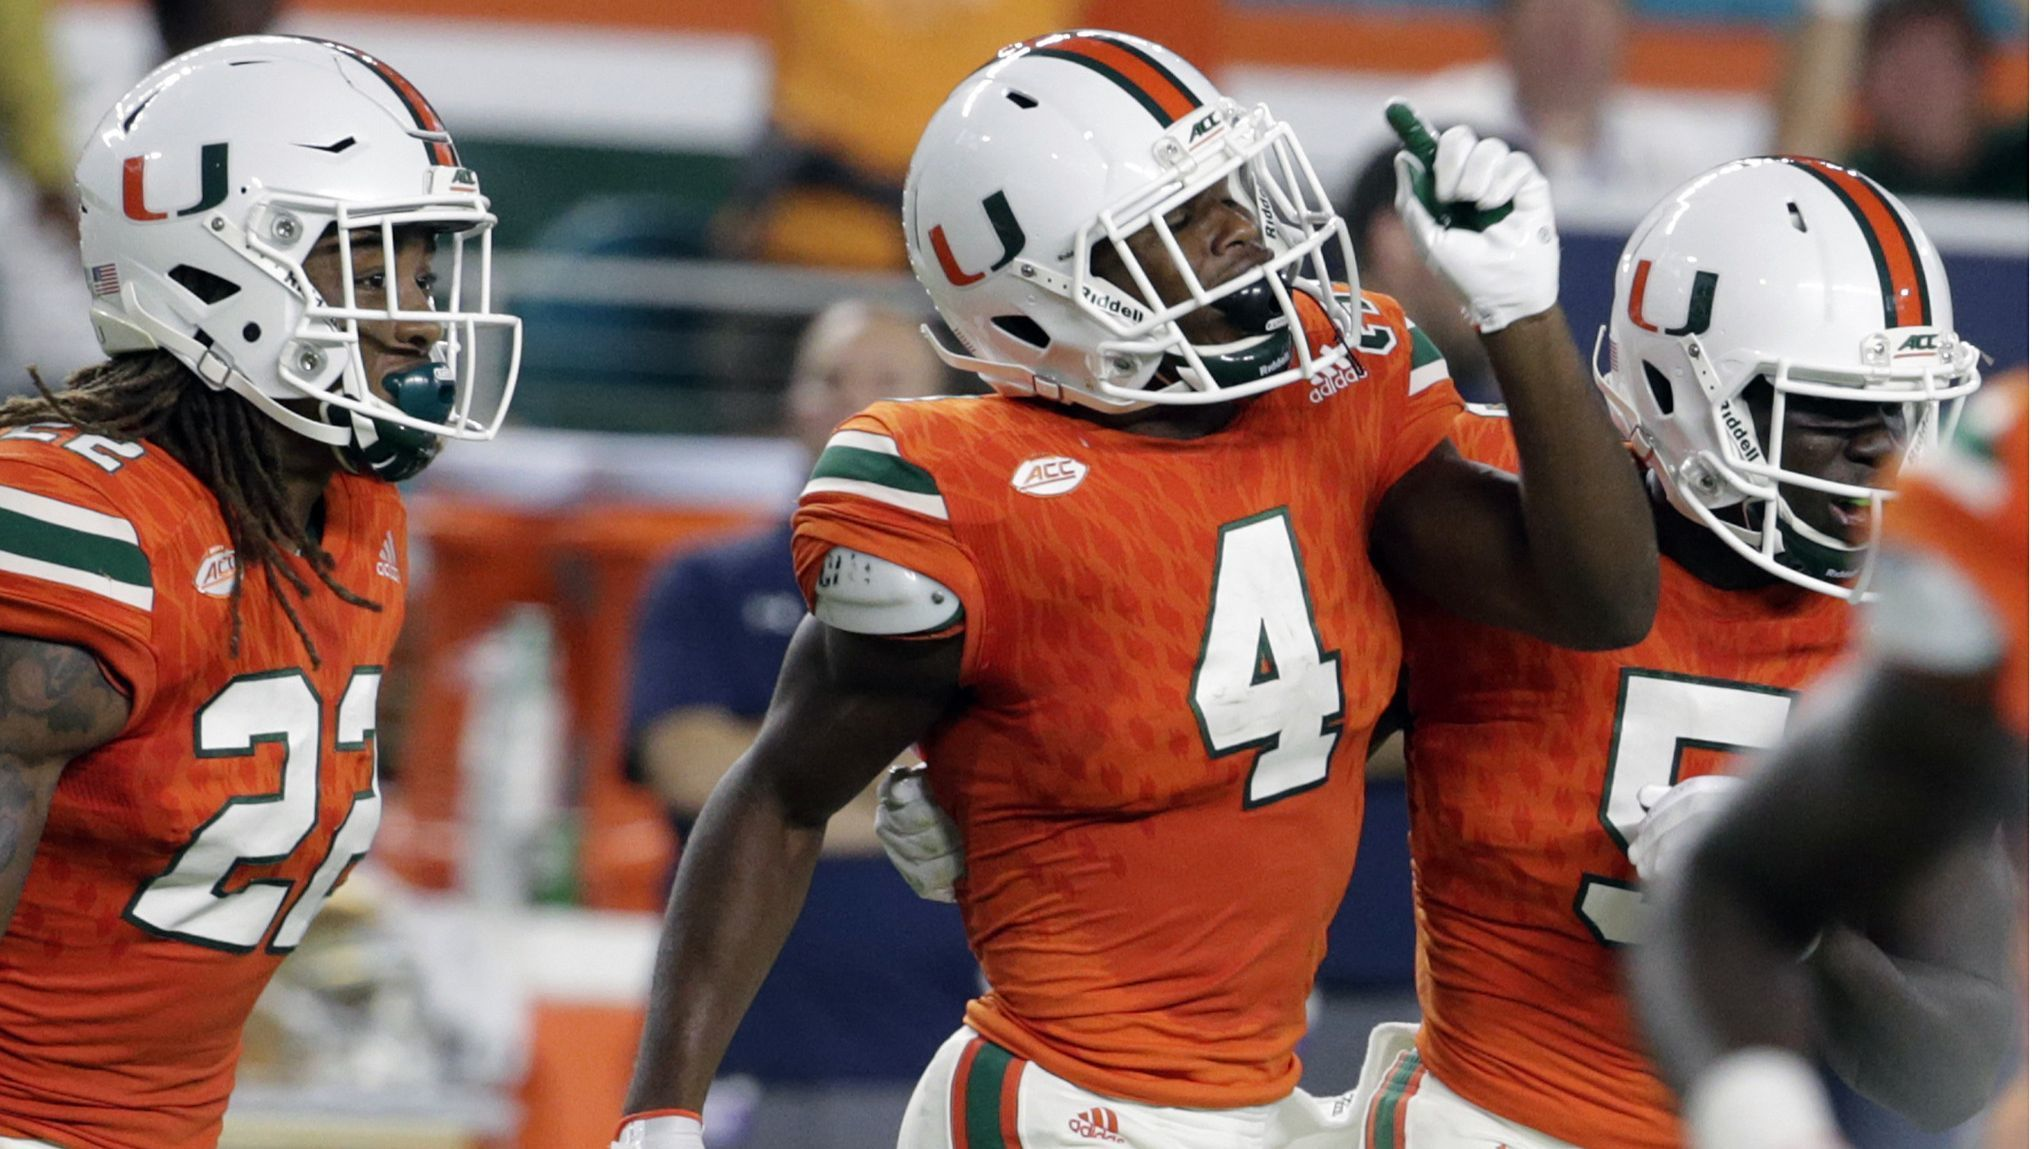 UM's Jaquan Johnson becomes third Hurricanes defensive back taken in 2019 NFL draft